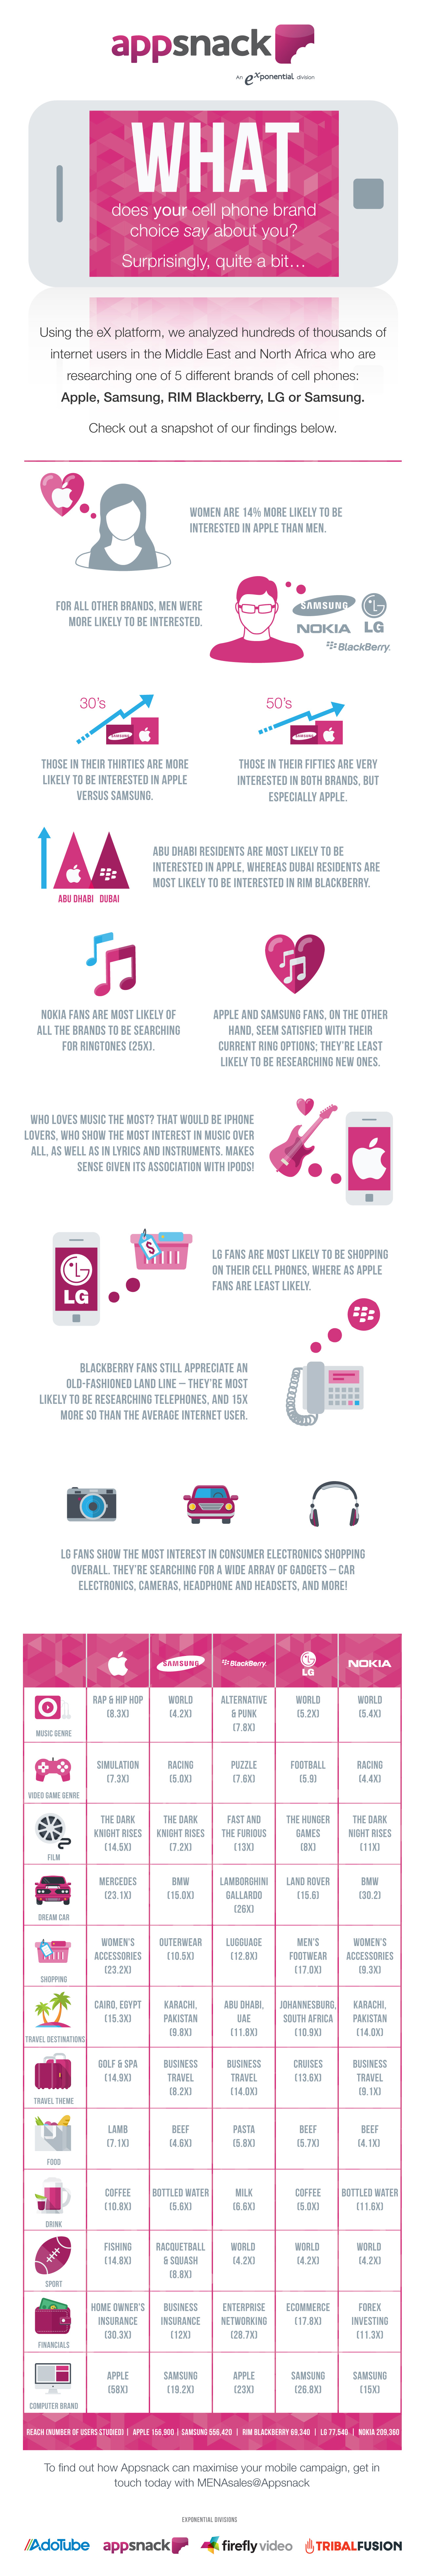 MENA Mobile Phone Infographic - Exponential